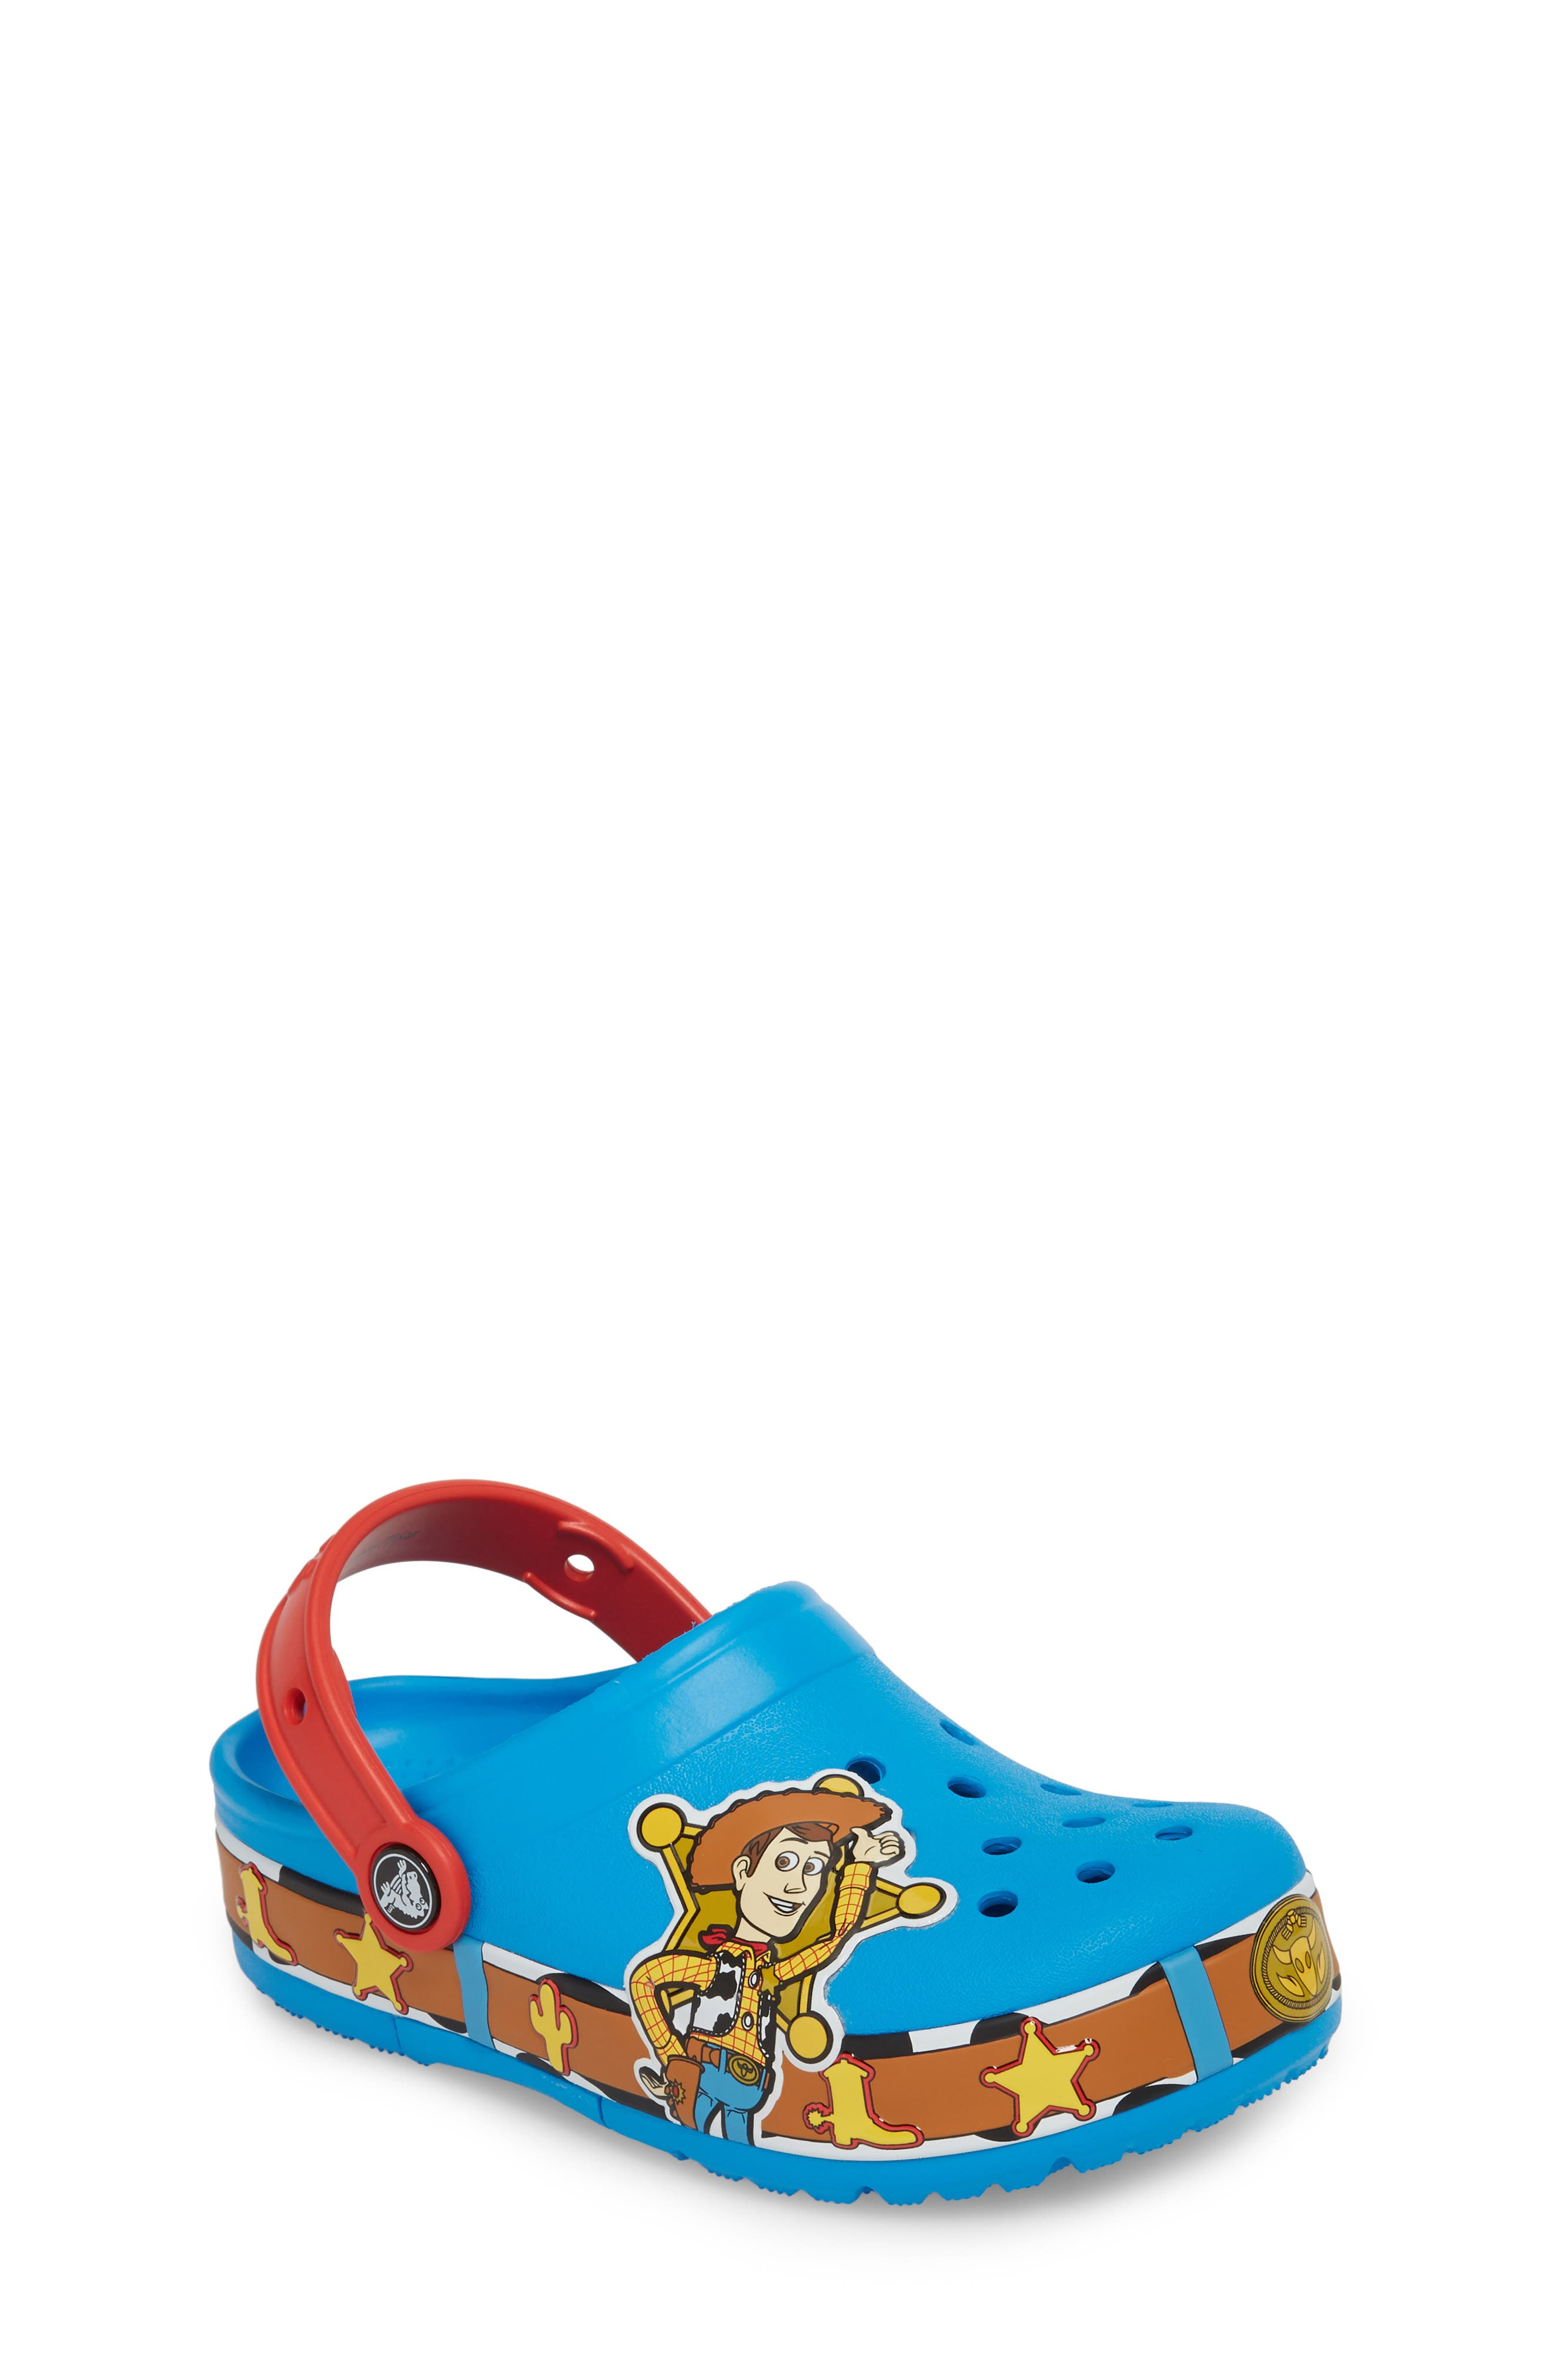 Disney Toy Story - Woody Crocband Light-Up Slip-On,                         Main,                         color, 456